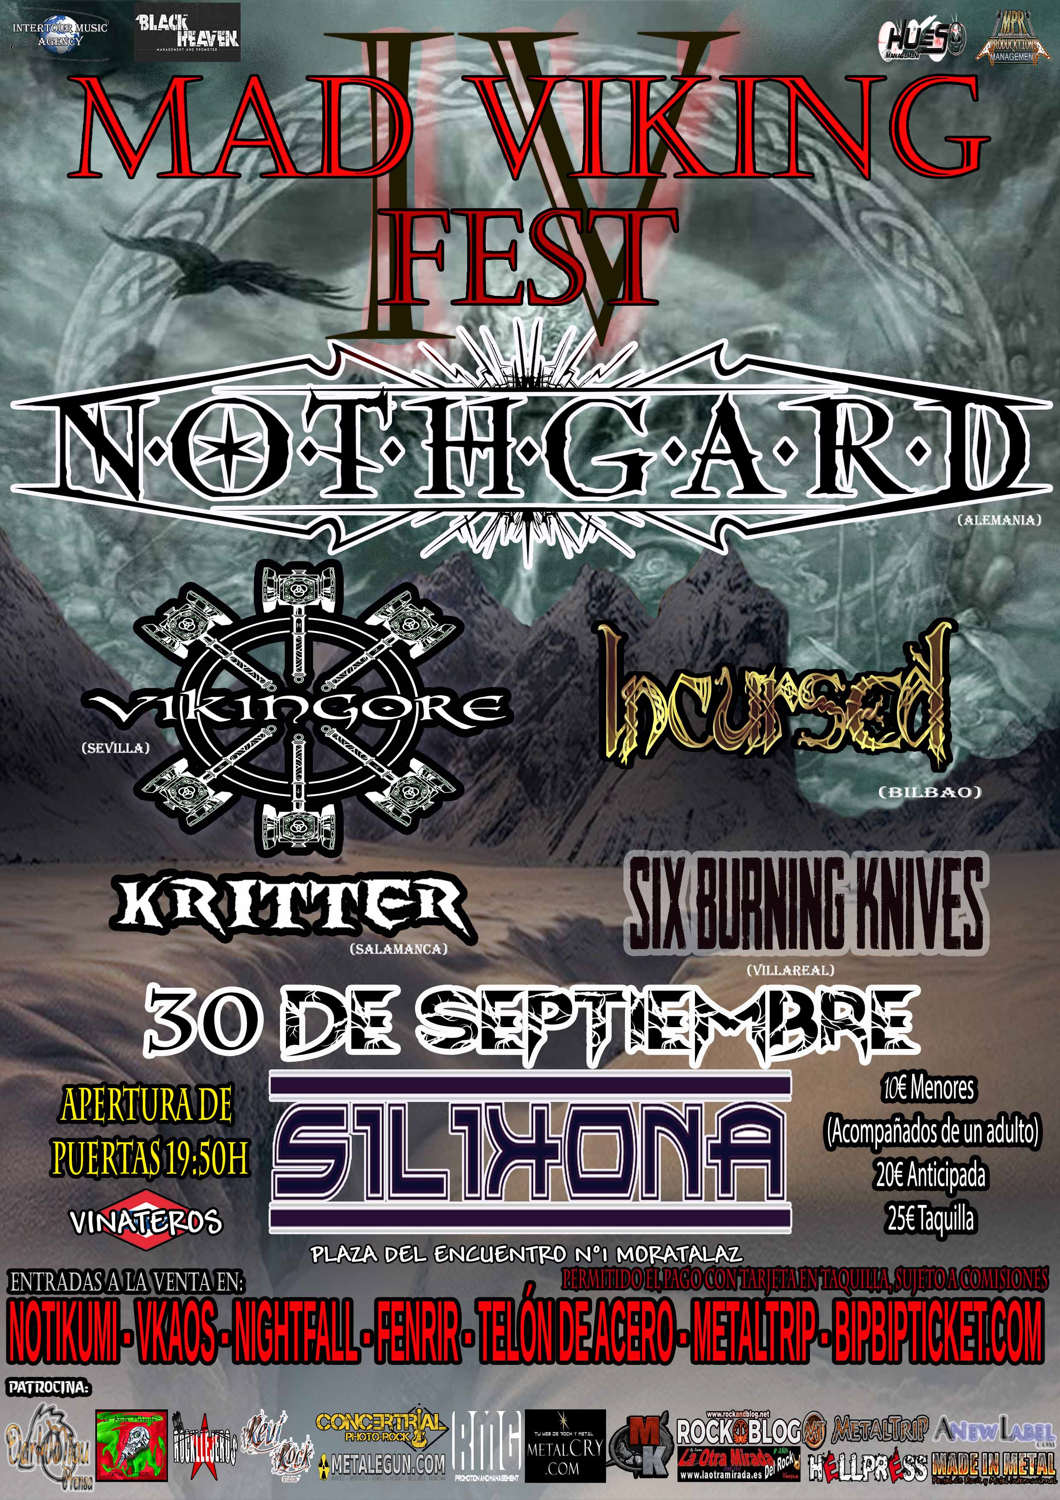 IV Mad Viking Fest